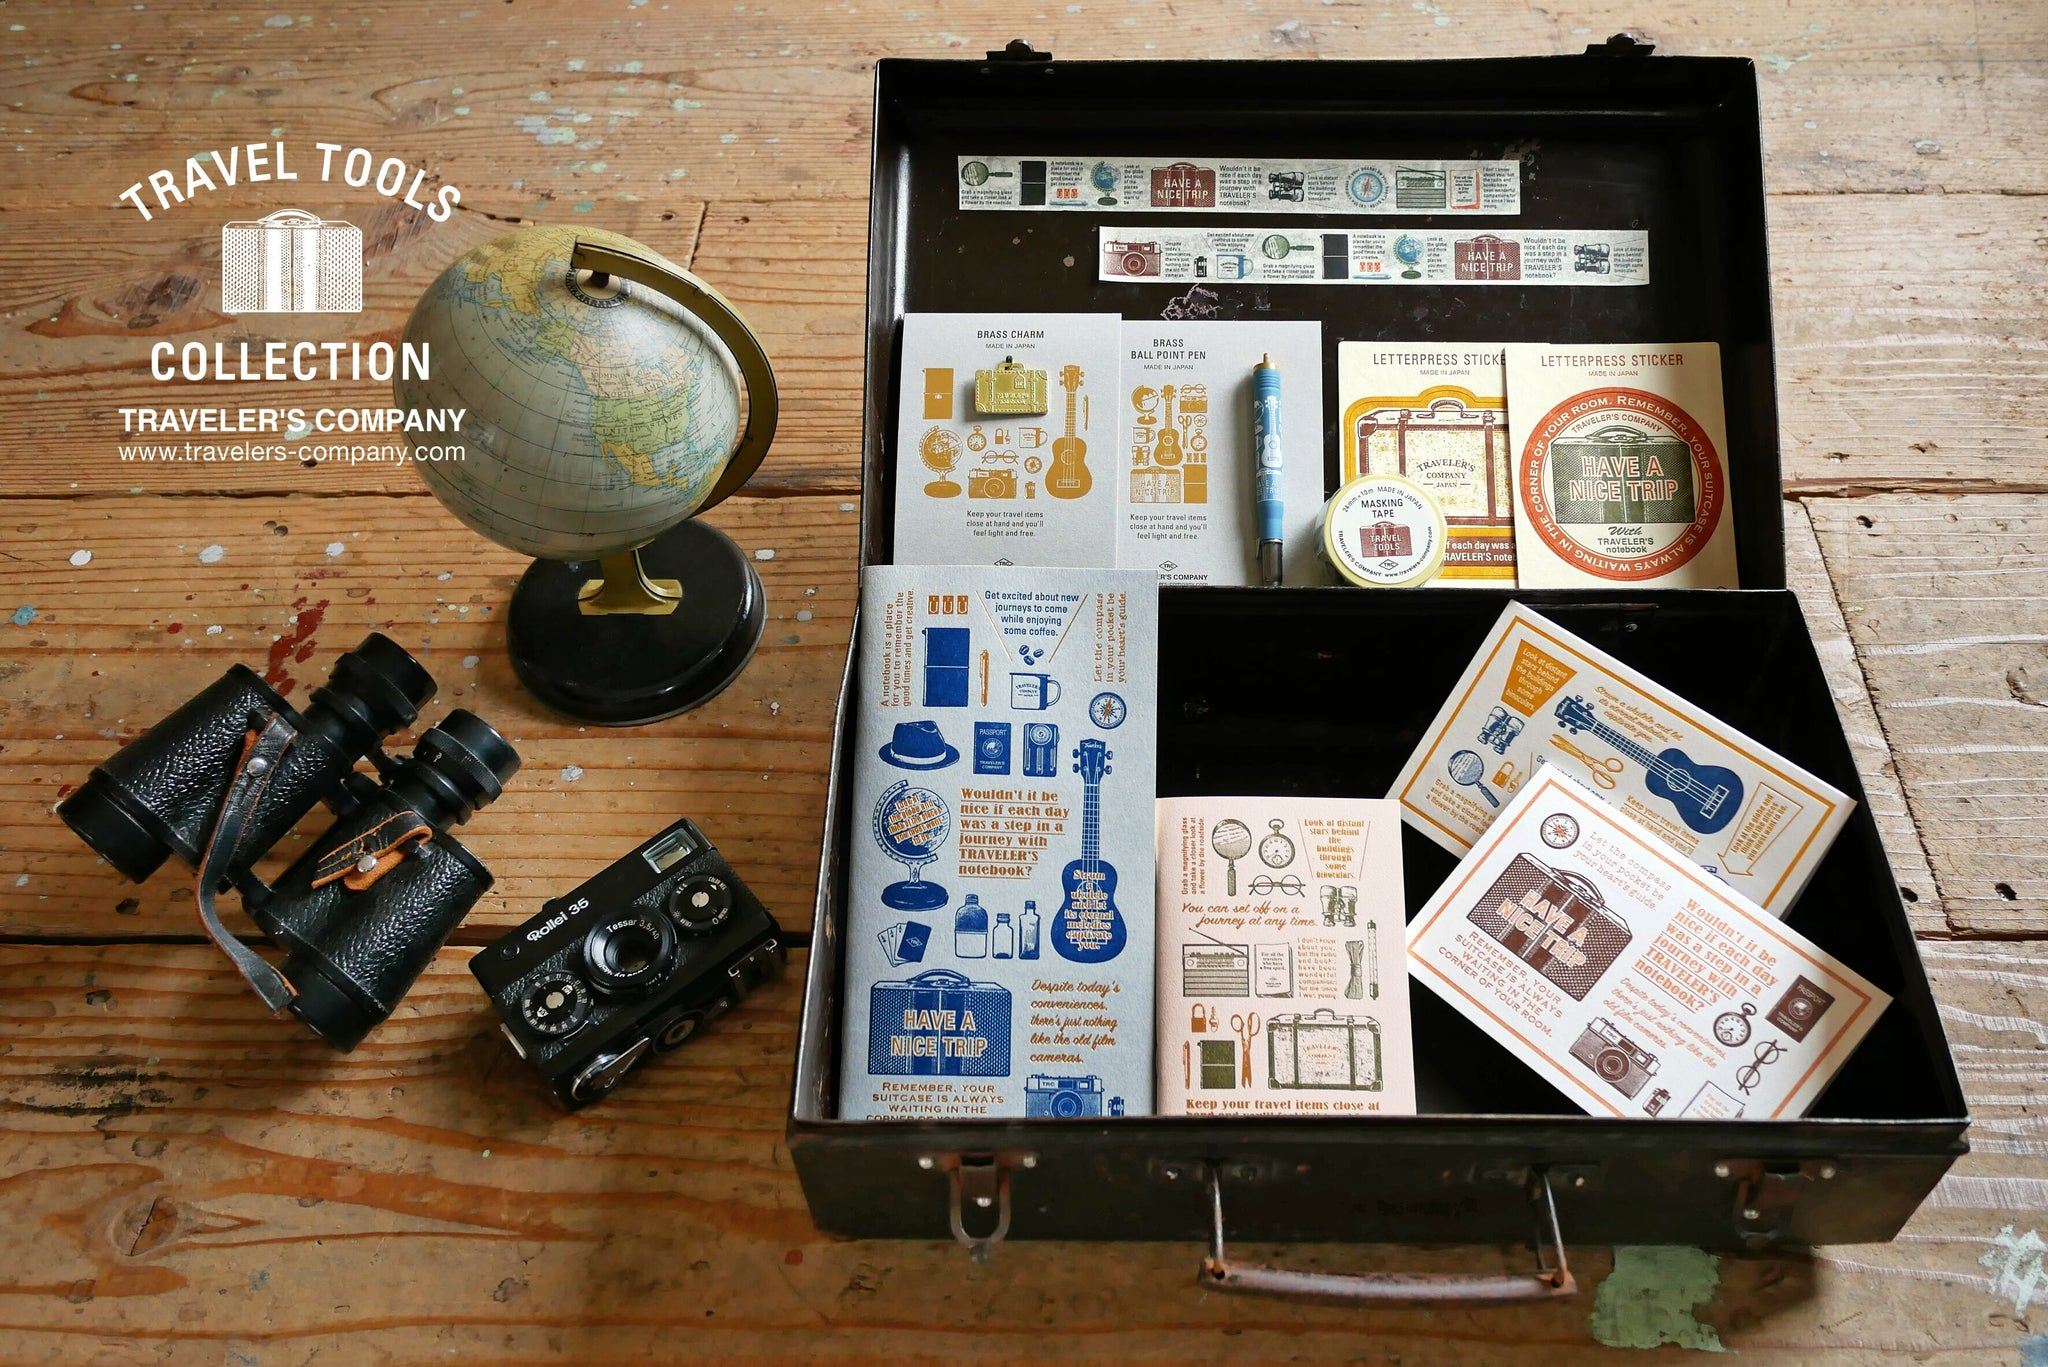 traveler's company ltd edition travel tools collection